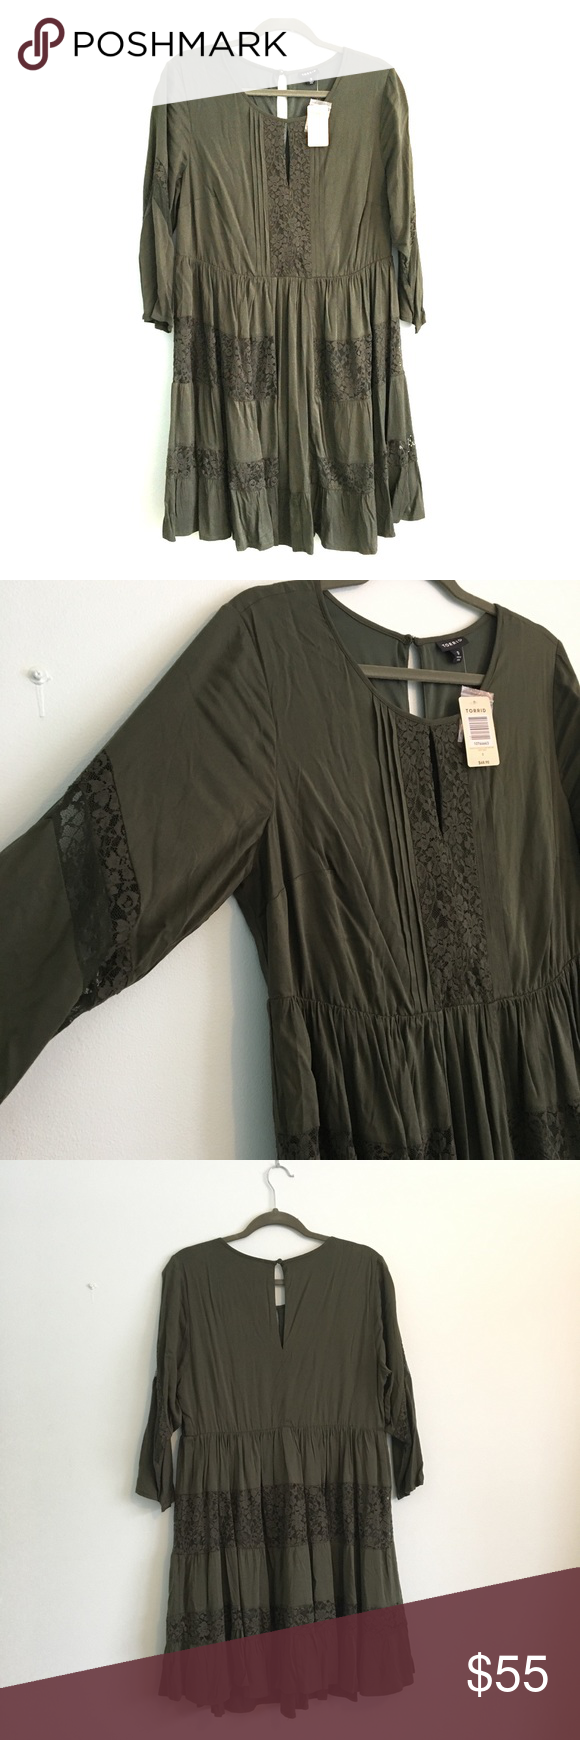 Olive green dress with lace plus size this dress is brand new tag